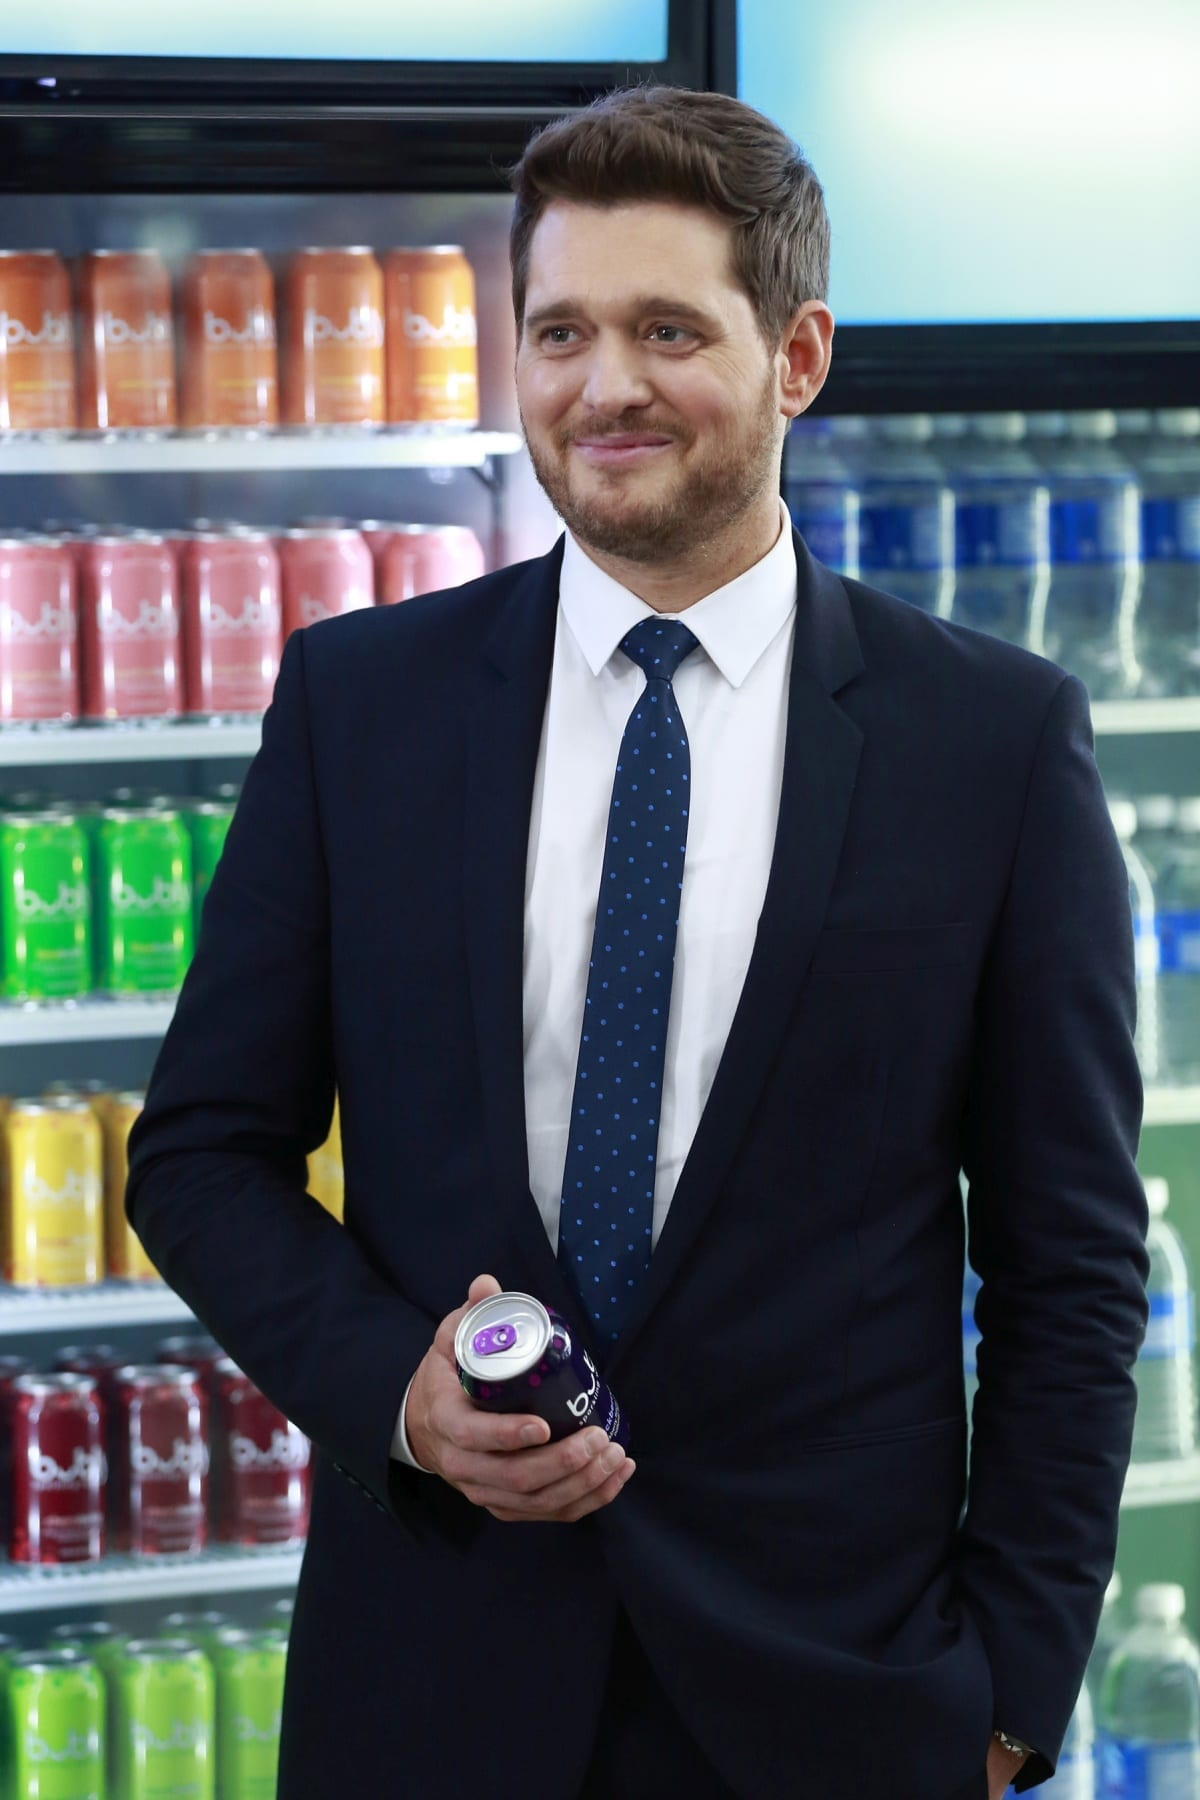 Michael Bublé appears in a Pepsi Bubly commercial November 28, 2018 in Vancouver, British Columbia, Canada.